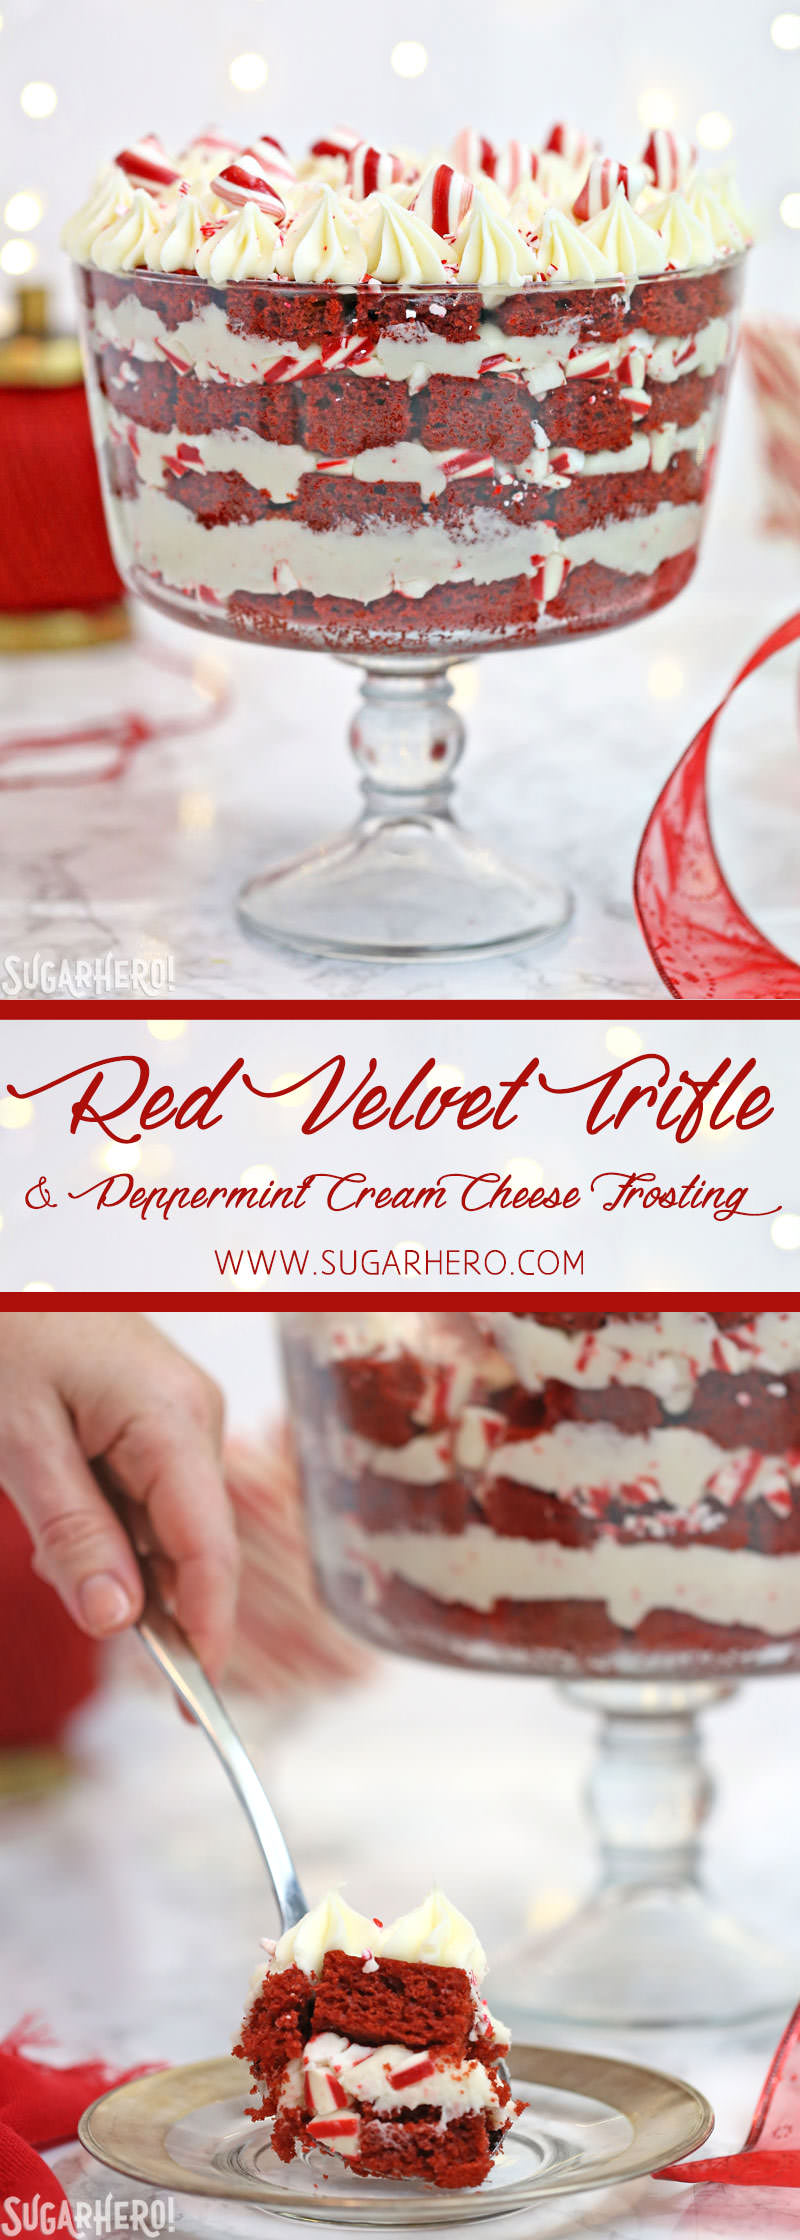 Red Velvet Trifle with Peppermint Cream Cheese Frosting | From SugarHero.com